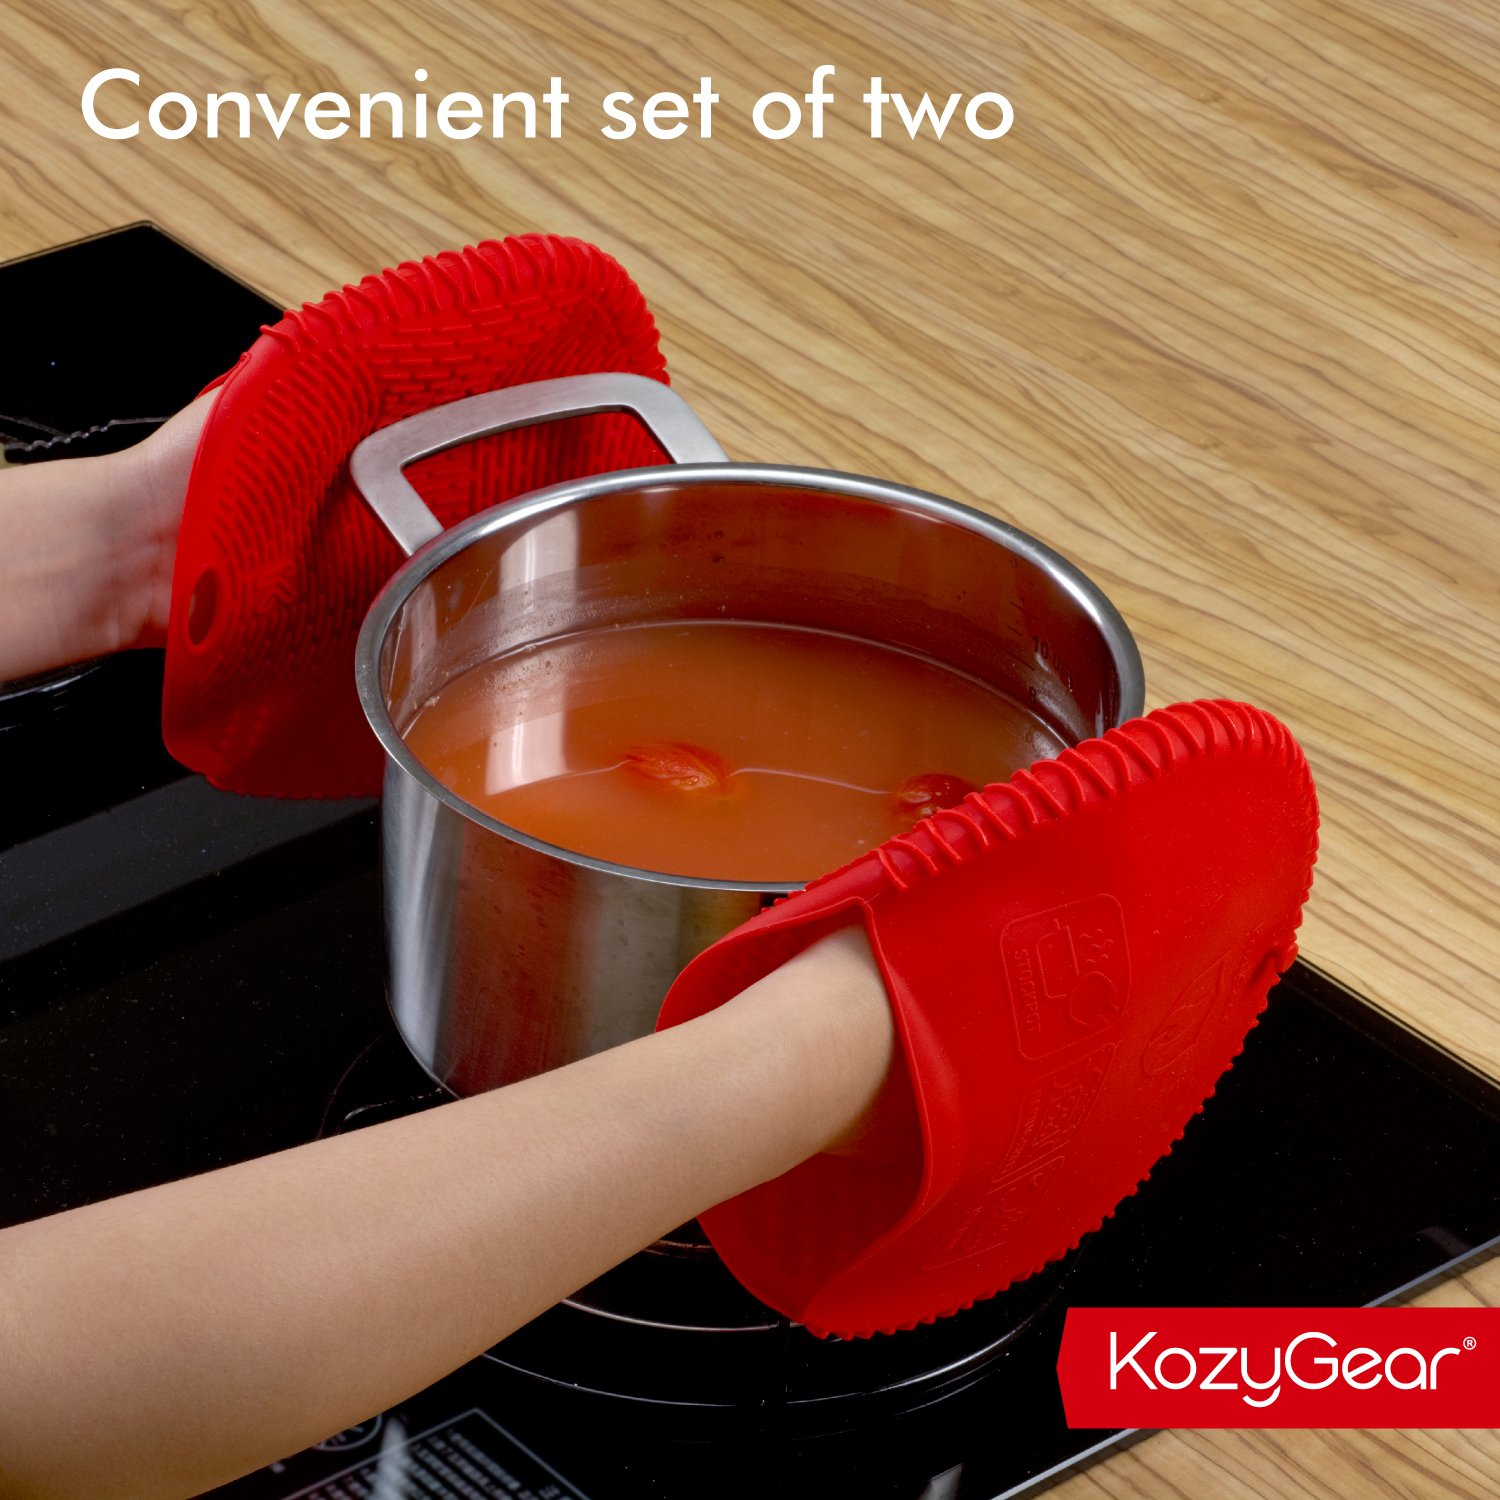 KozyGear Premium 442 °F Heat Resistant Silicone Glove Holder/Oven Mitt Pair Set for Hot Pot [Z4 Series] (RED) by KozyGear (Image #8)